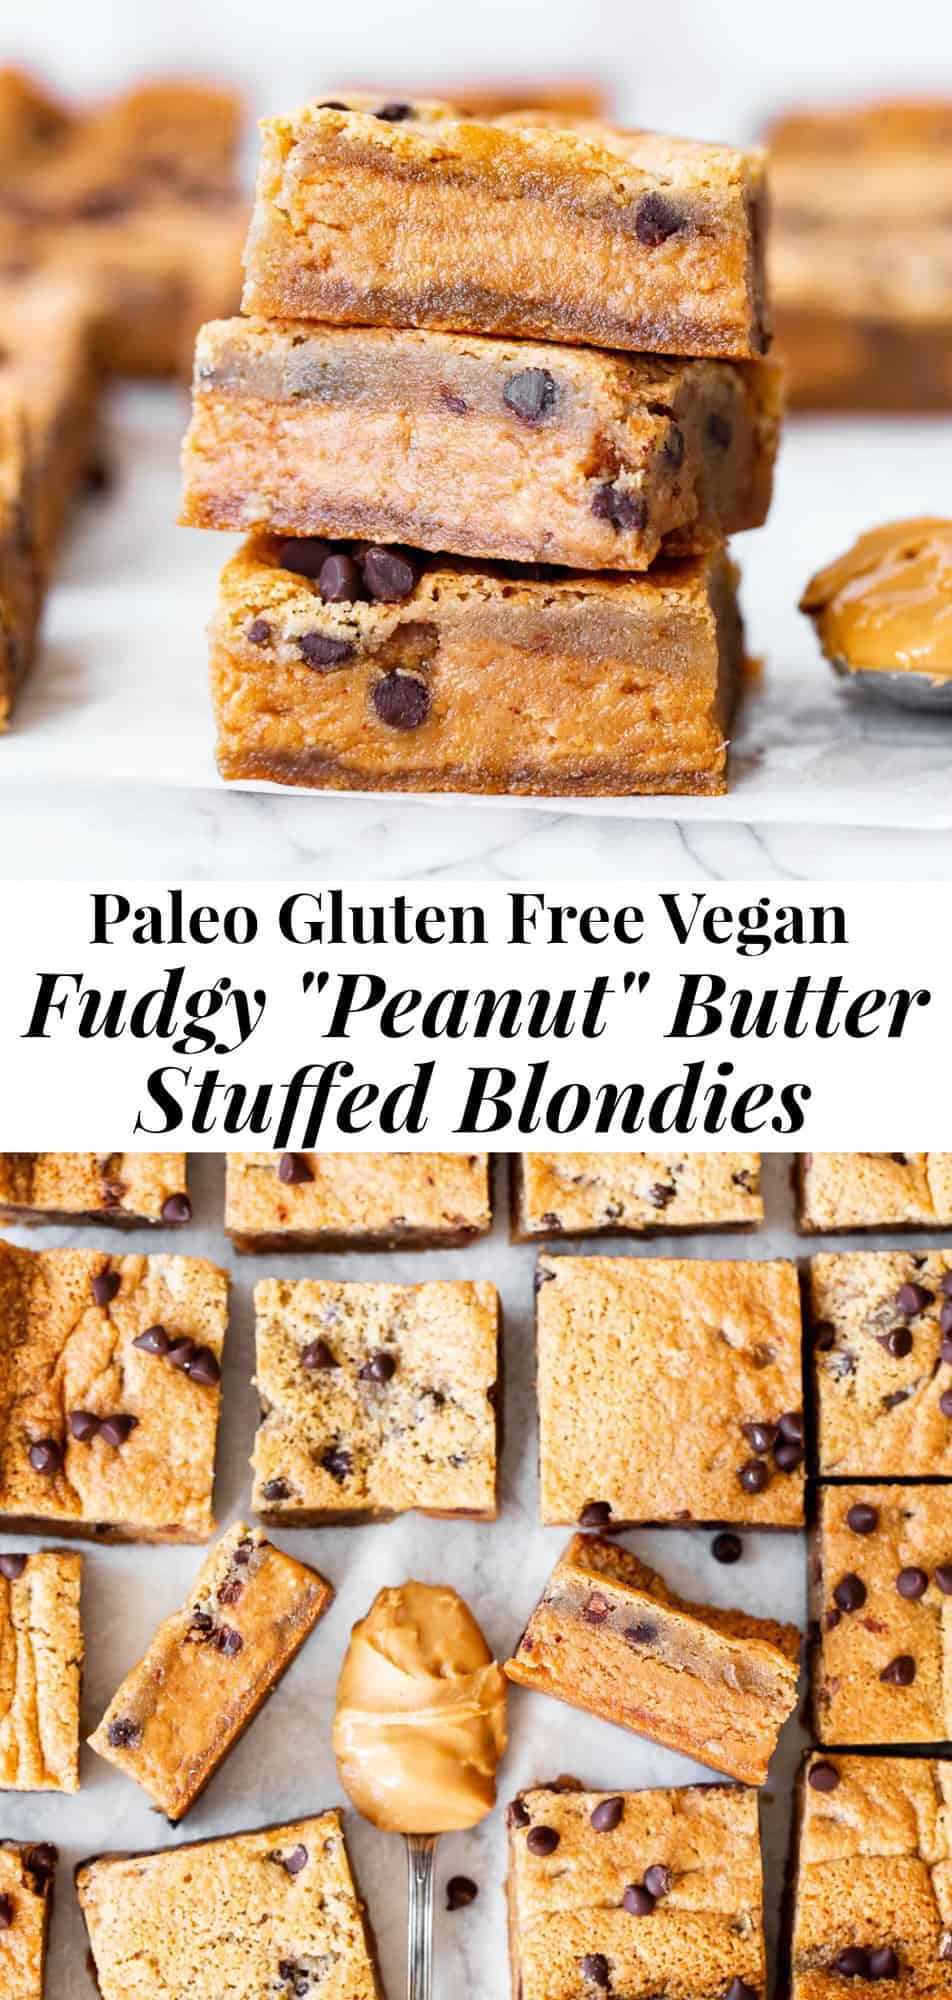 "These super fudgy chocolate chip blondies are stuffed with a thick fudgy layer of nut butter for the dreamiest ""peanut"" butter stuffed blondies you'll ever make!  They're gluten free, dairy free, vegan, egg free and insanely delicious! #vegan #paleo #glutenfree"